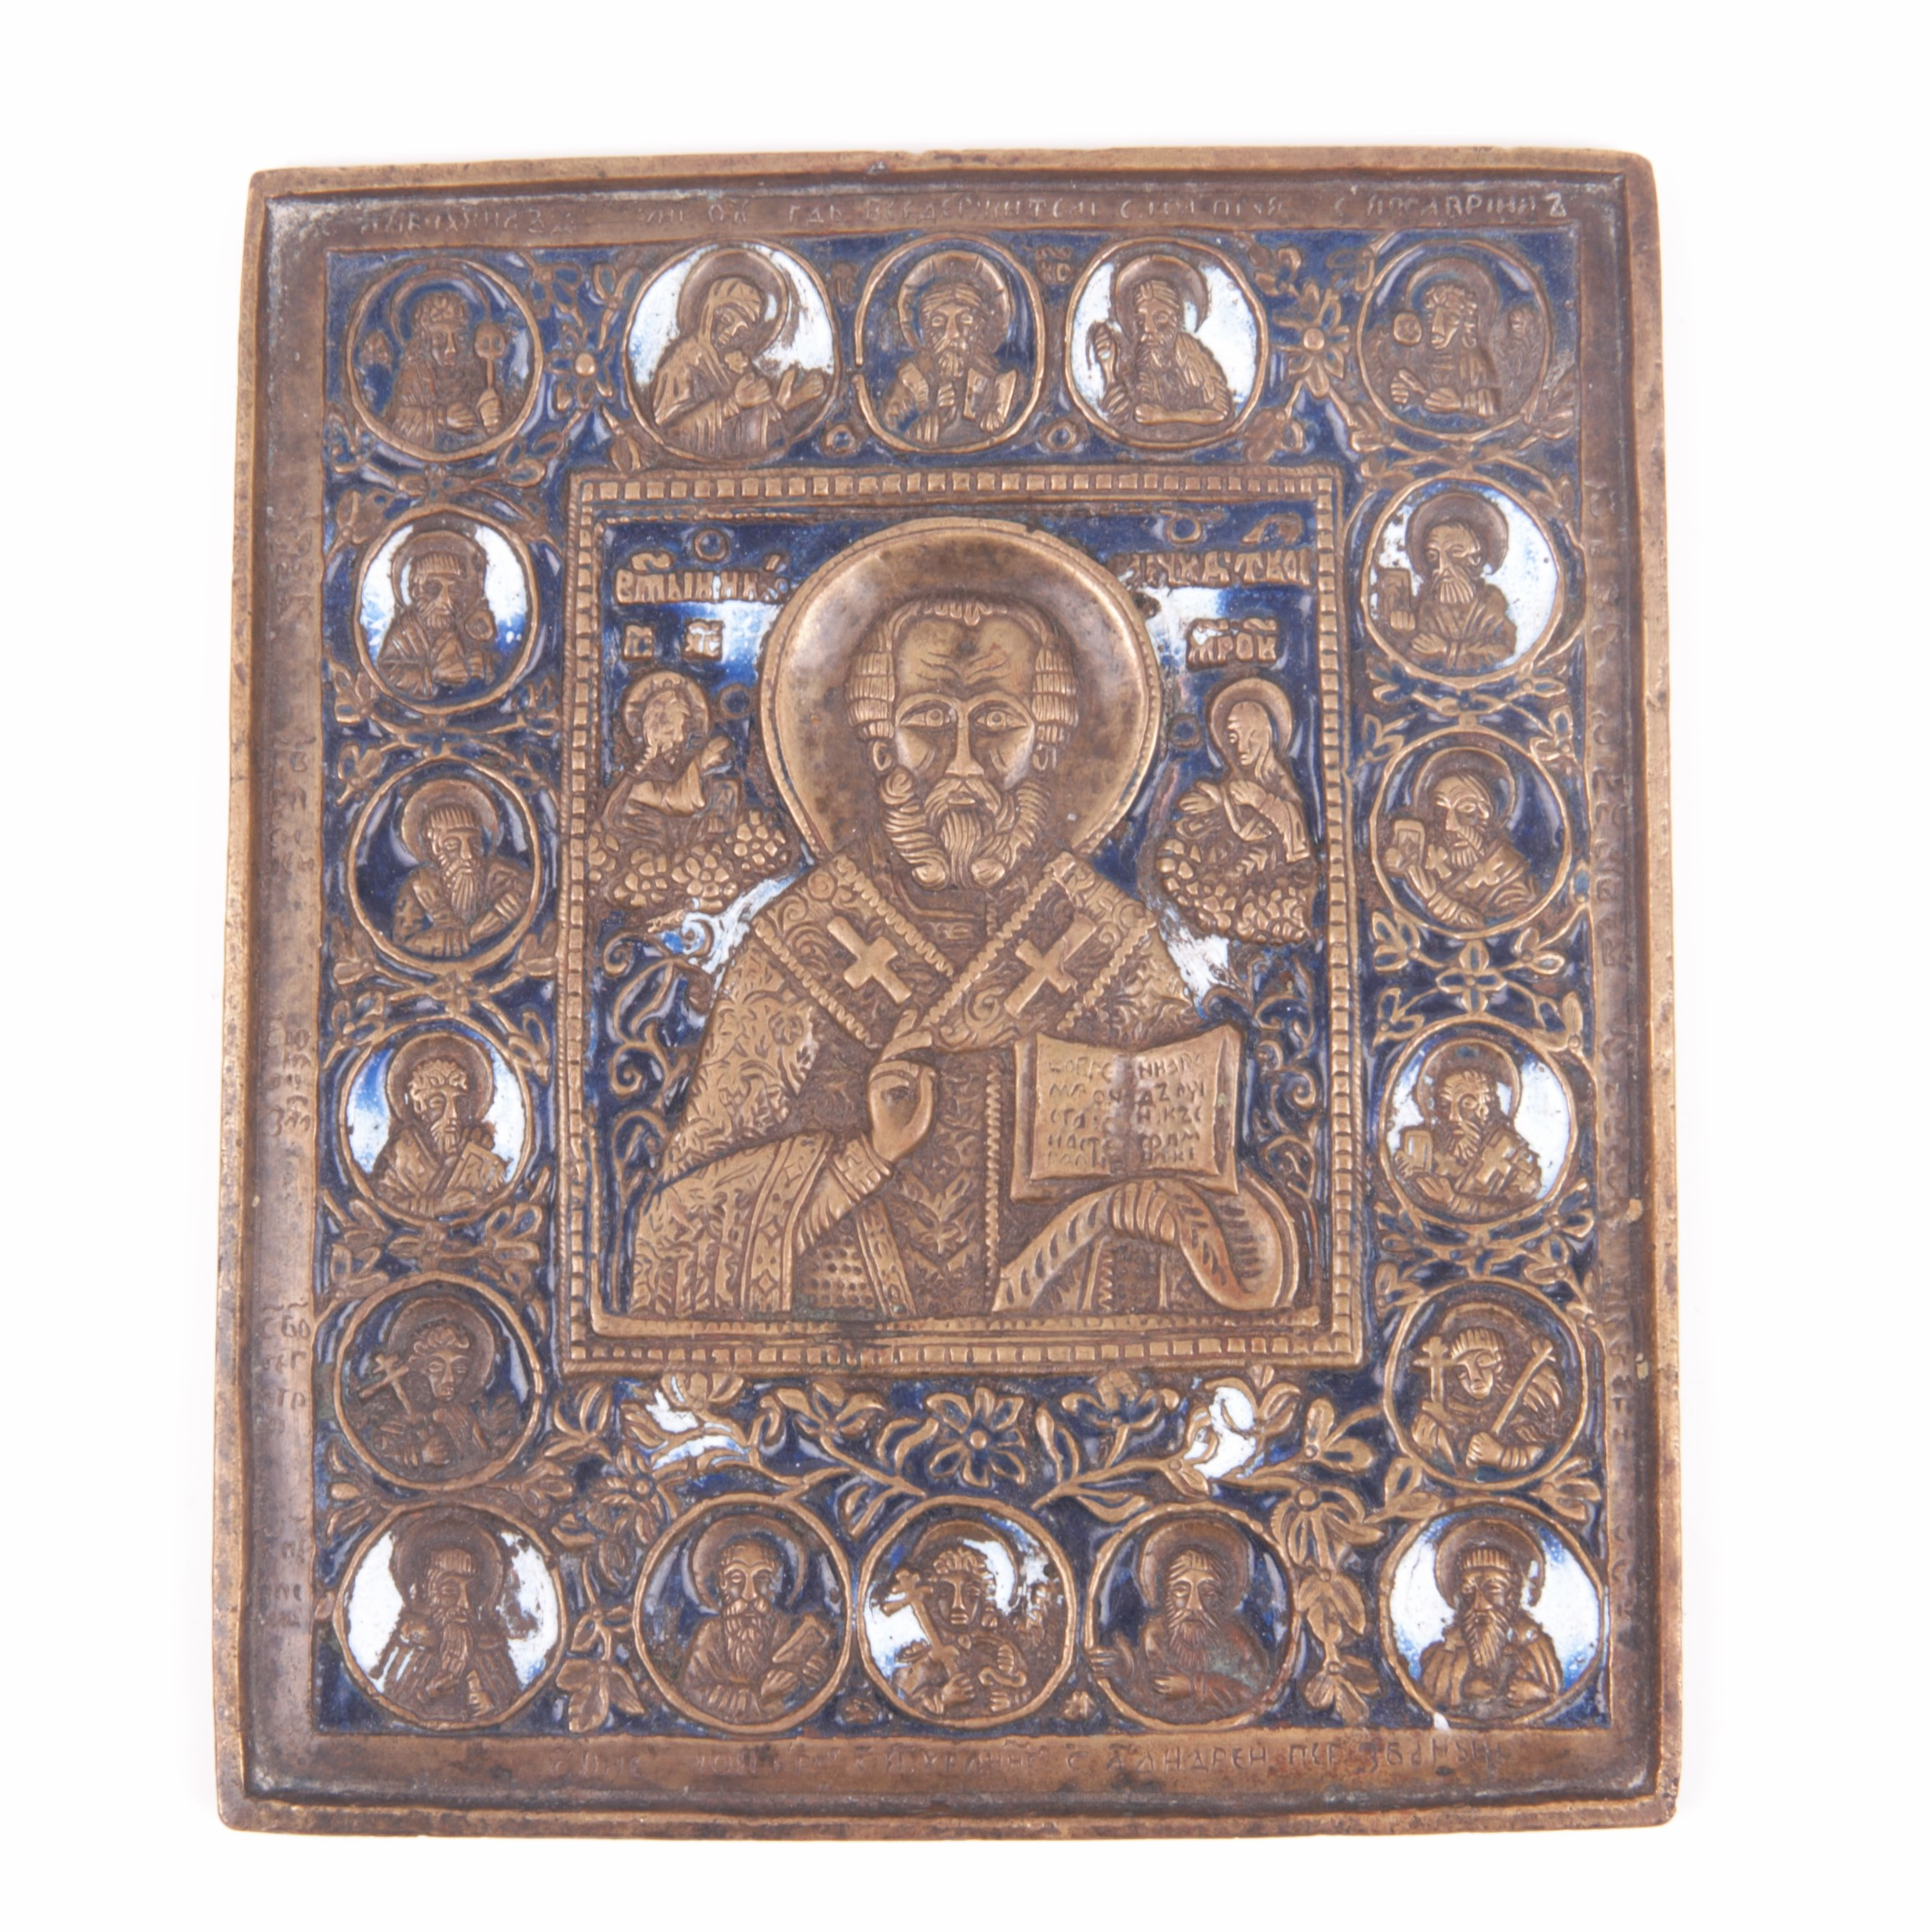 brass plaquette icon depicting Saint Nicholas